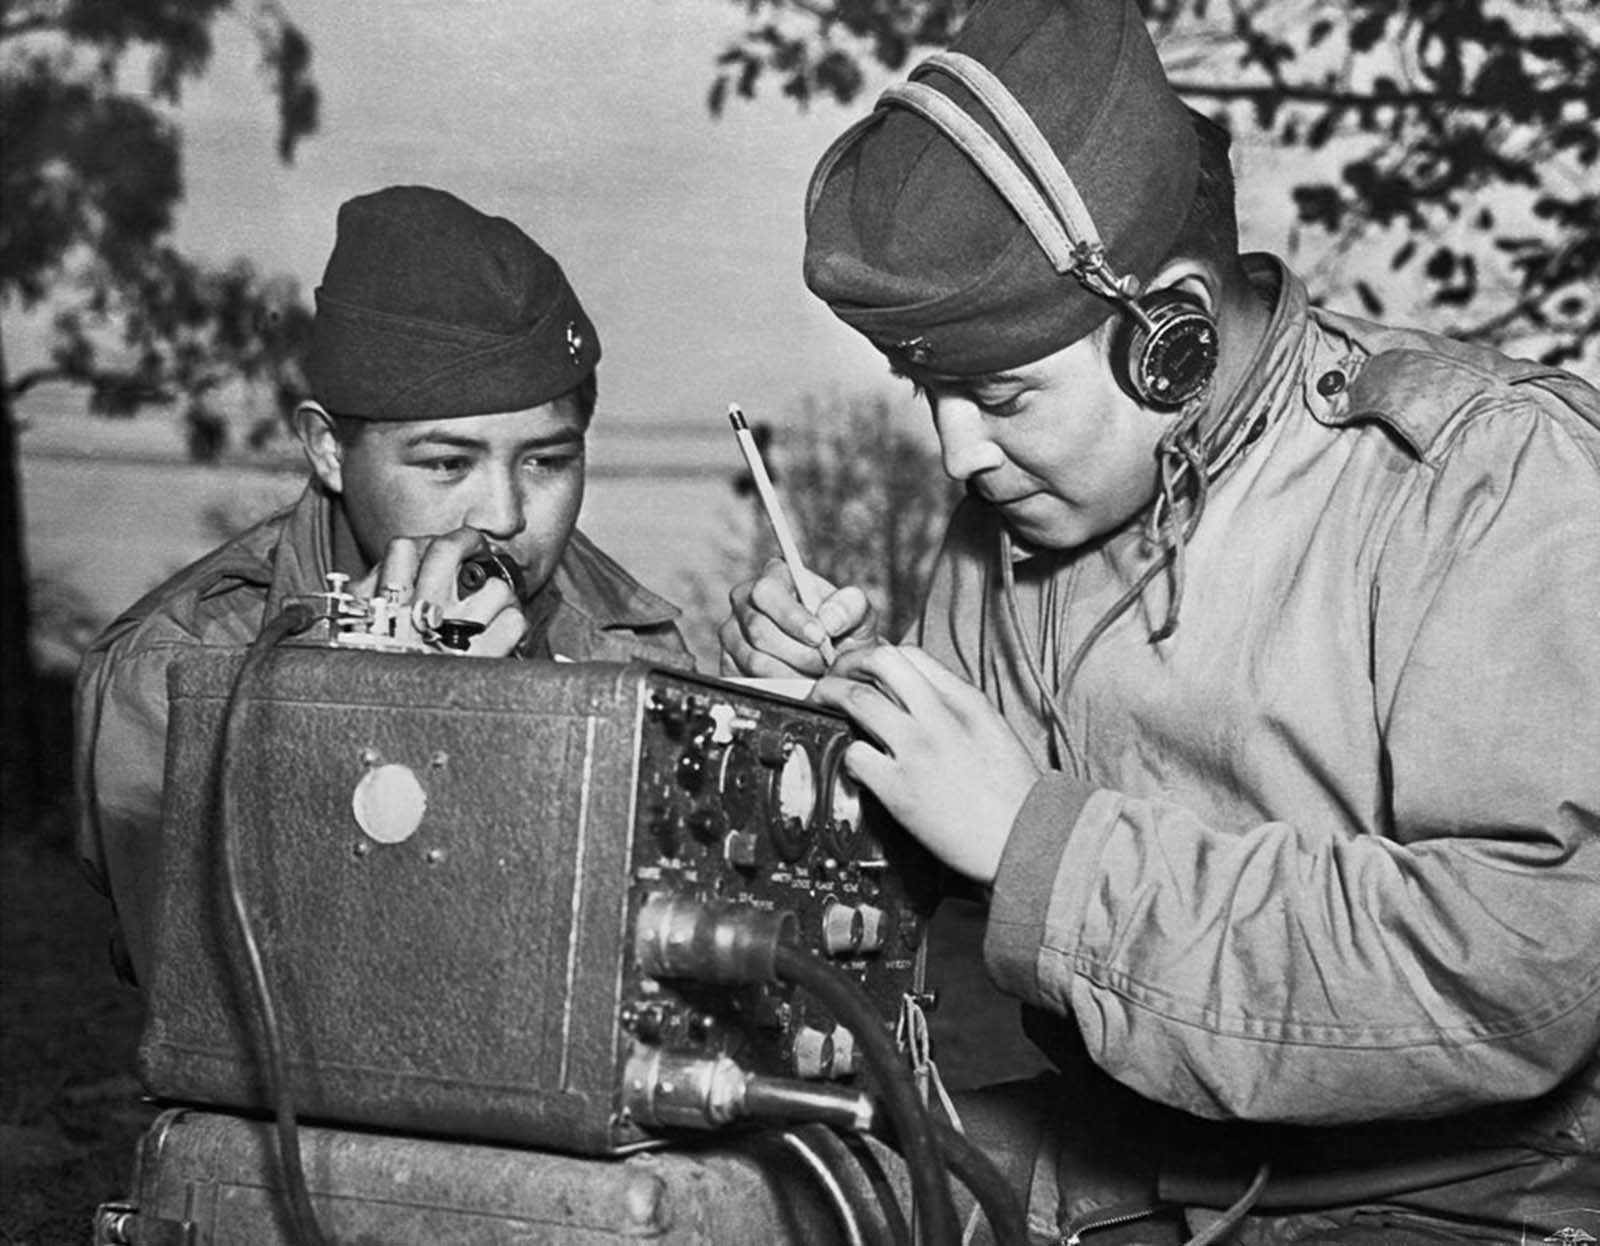 A two-man team of code talkers attached to a Marine regiment relay coded orders over a field radio.